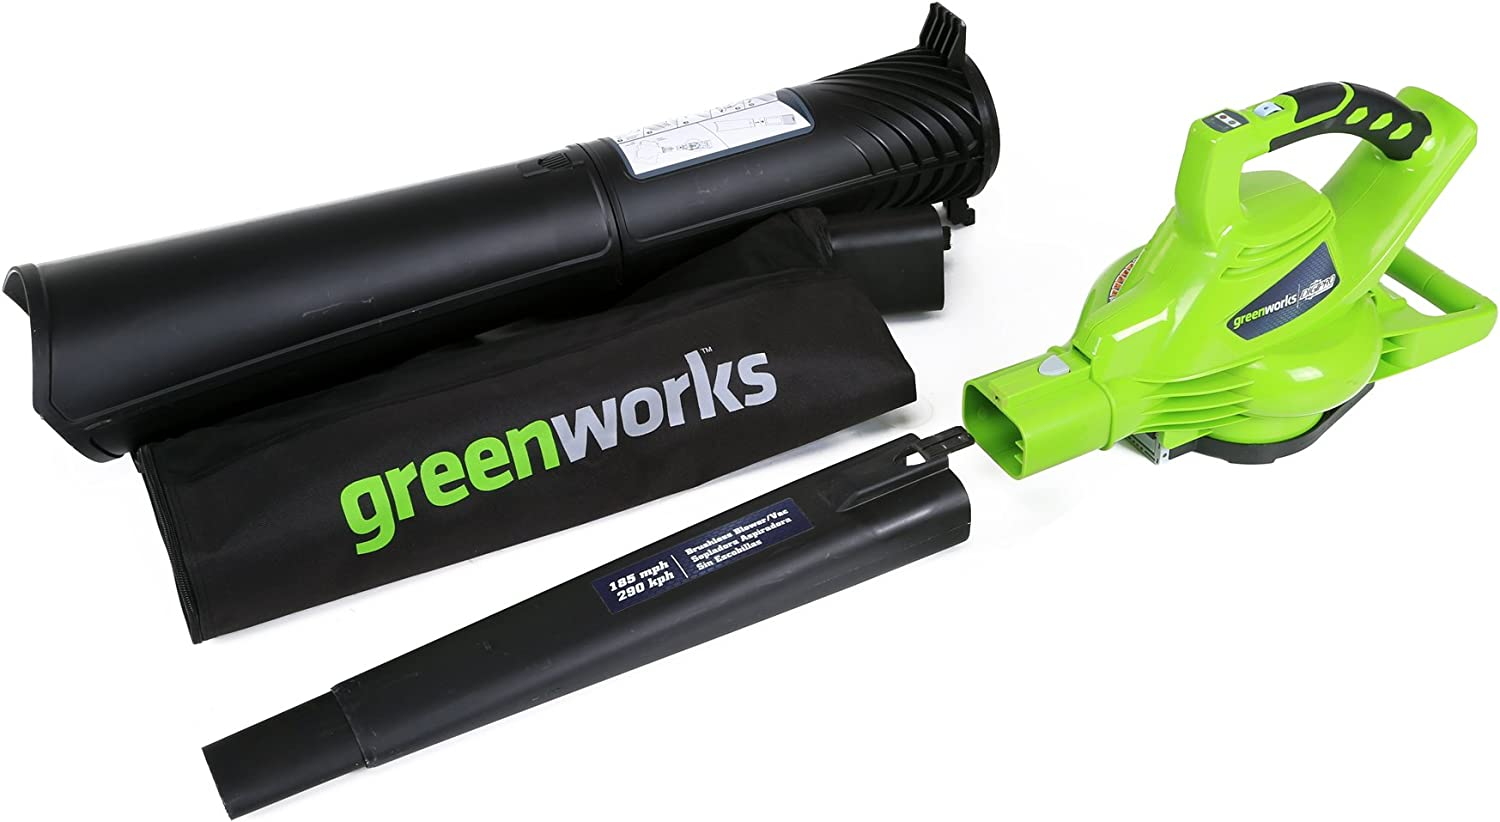 Greenworks 40V 185 MPH Variable Speed Cordless Leaf Blower Vacuum, Battery Not Included 24312